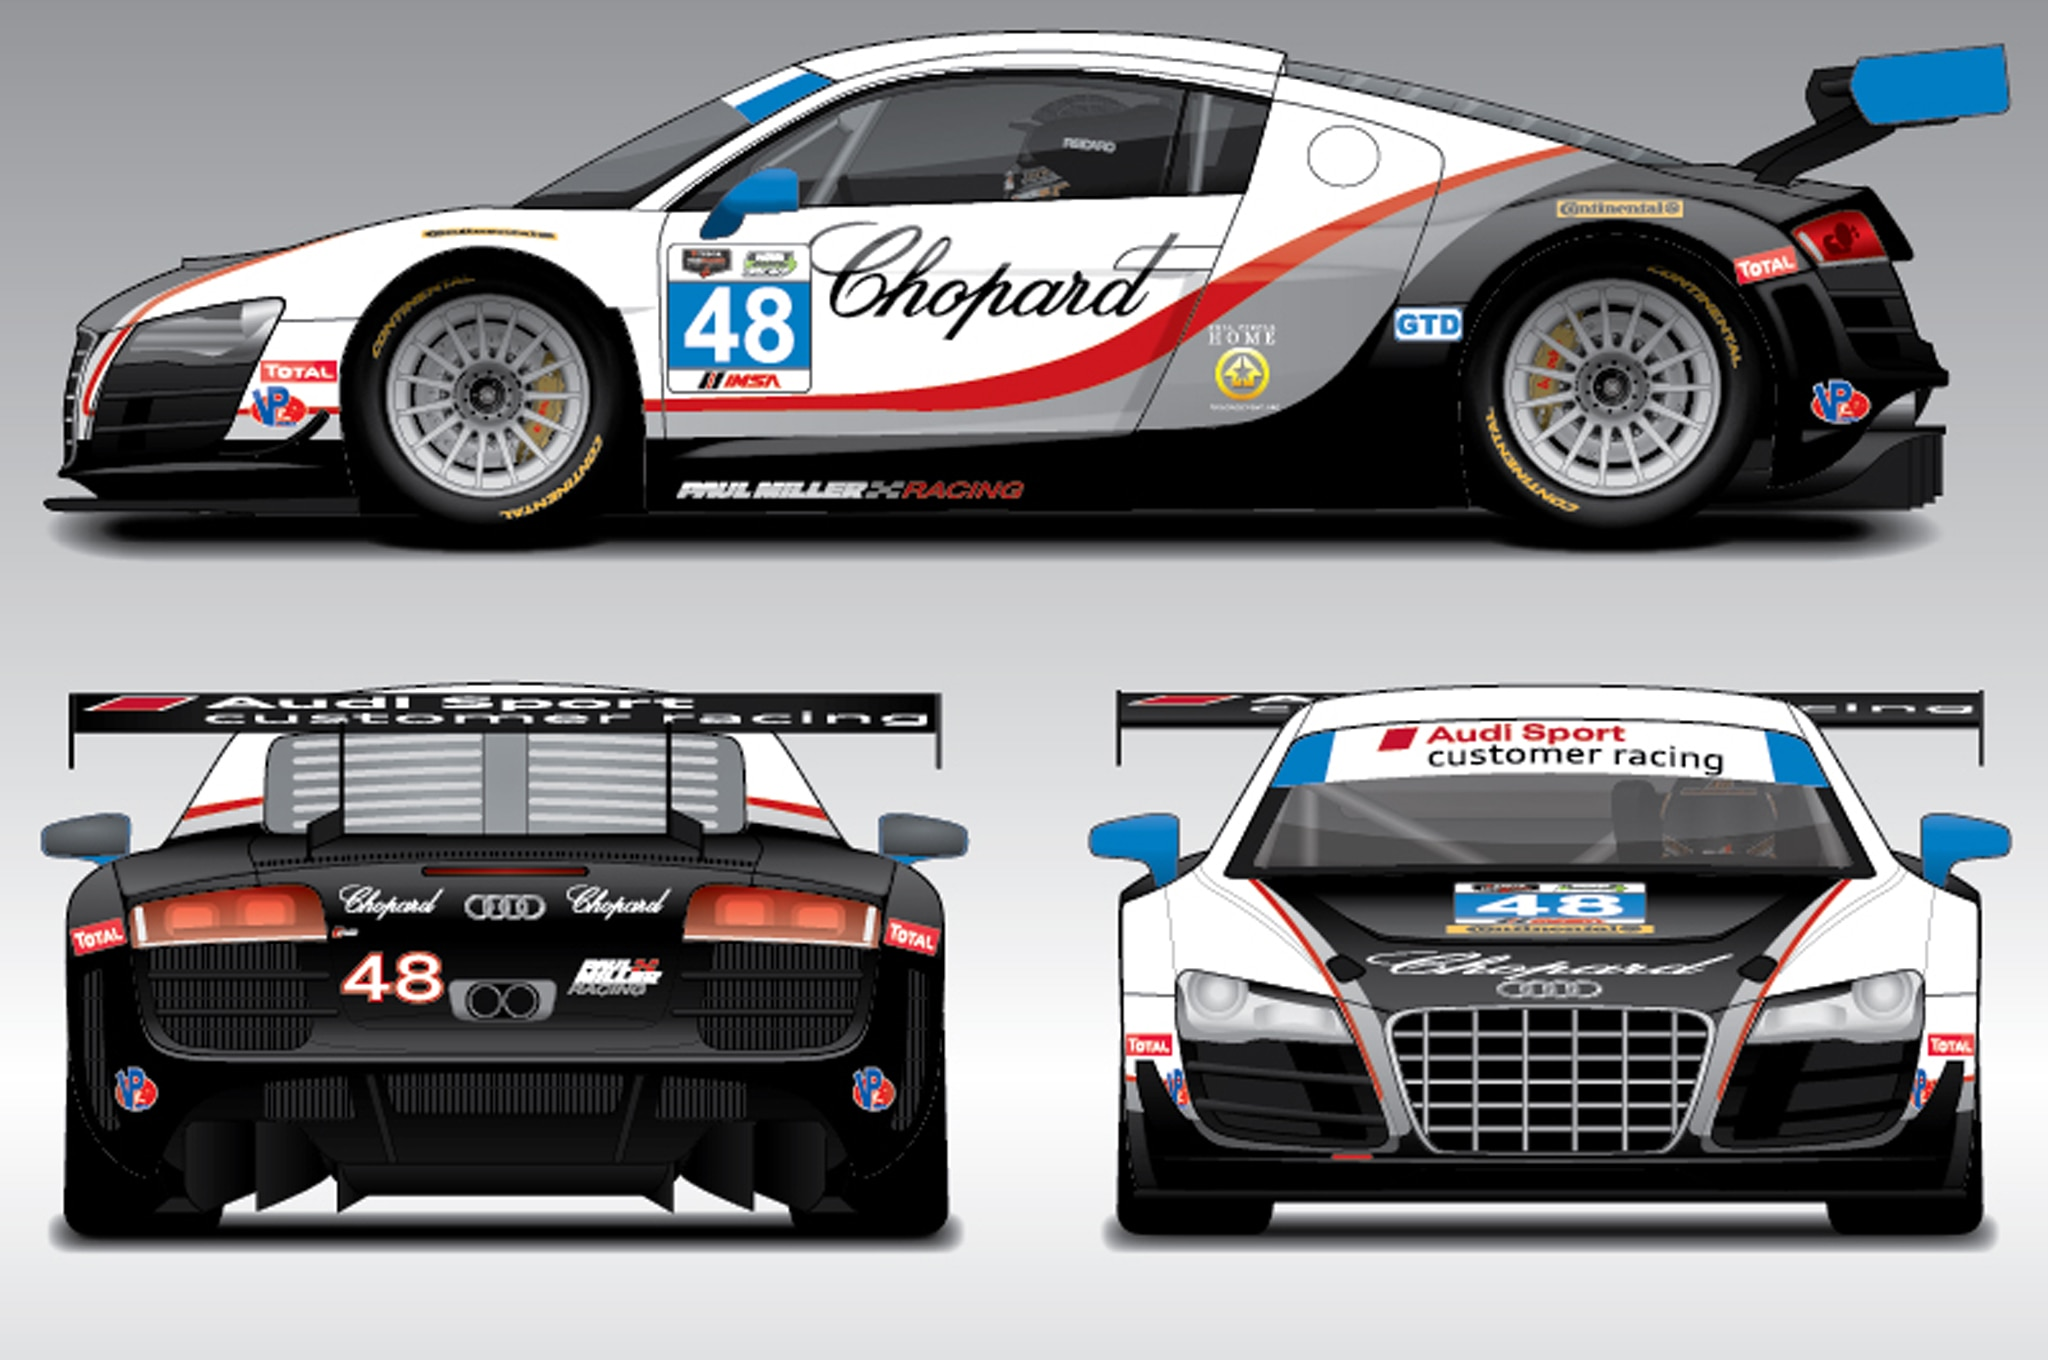 audi releases liveries for daytona r8 endurance racers